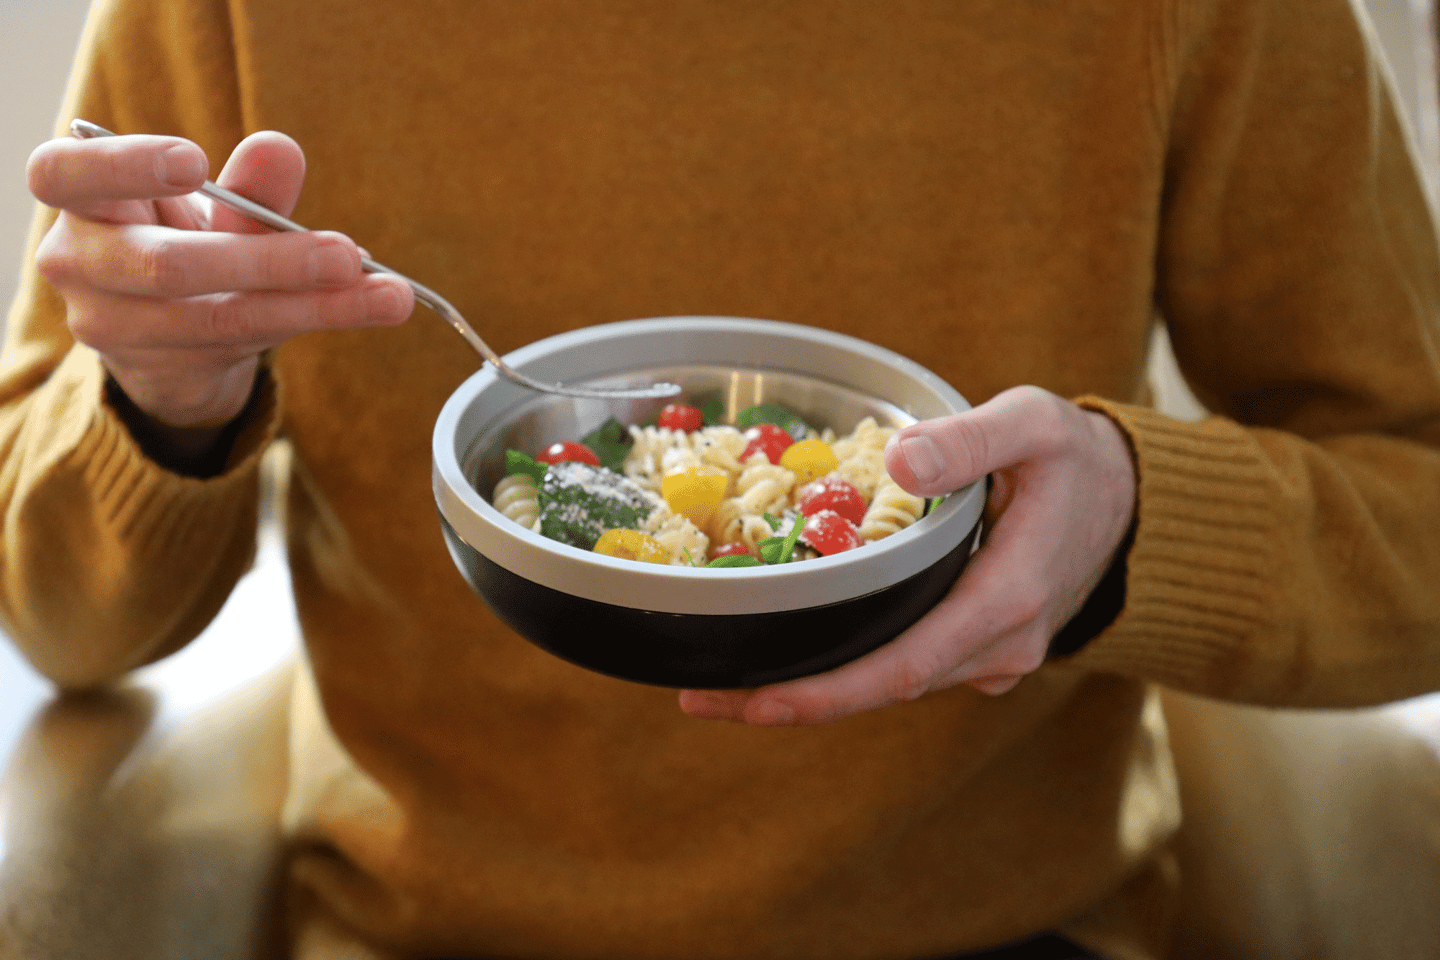 Bonbowl buyers can choose between an uncoated or non-stick bowl